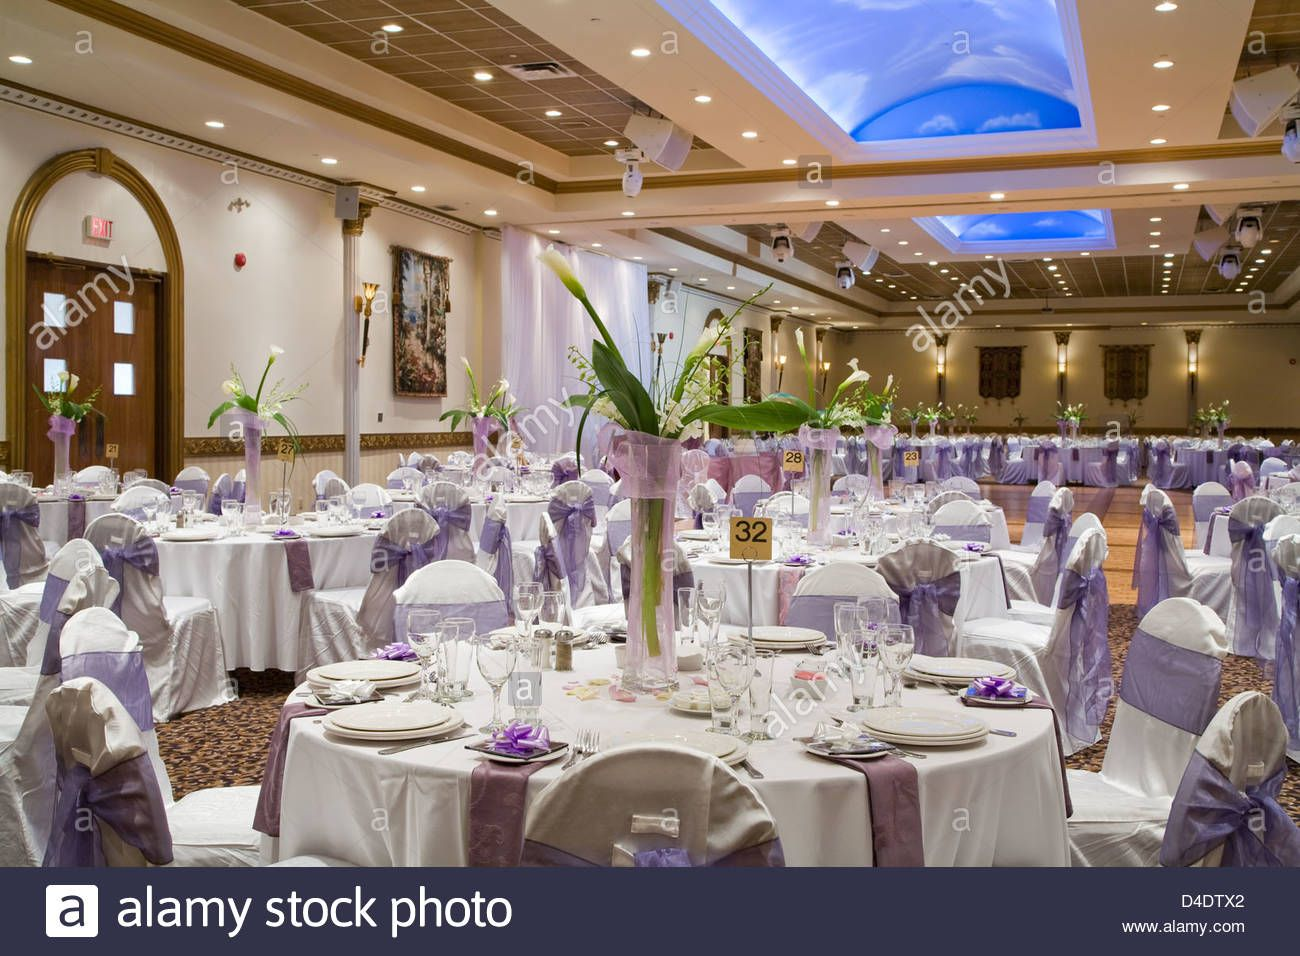 Indoor Wedding Reception Hall With Round Tables And Flower